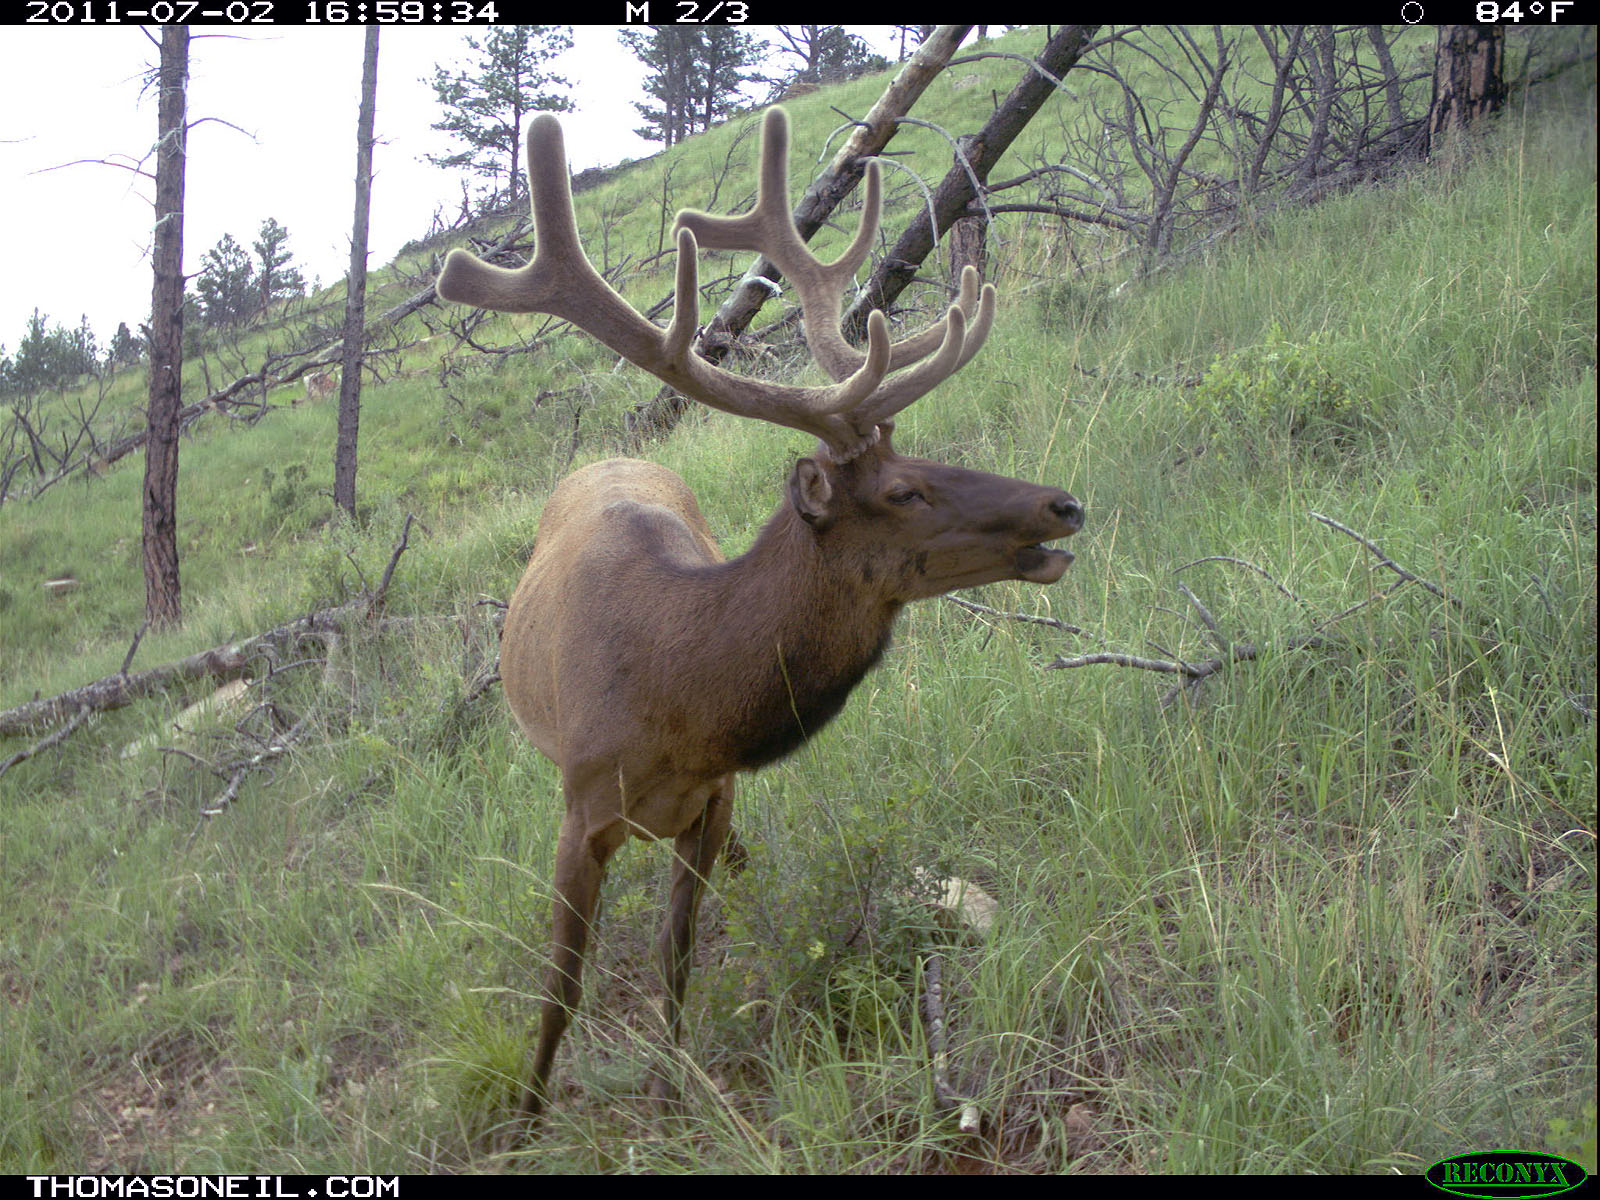 Elk on trail camera, Wind Cave National Park, South Dakota, July 2011.  Click for next photo.